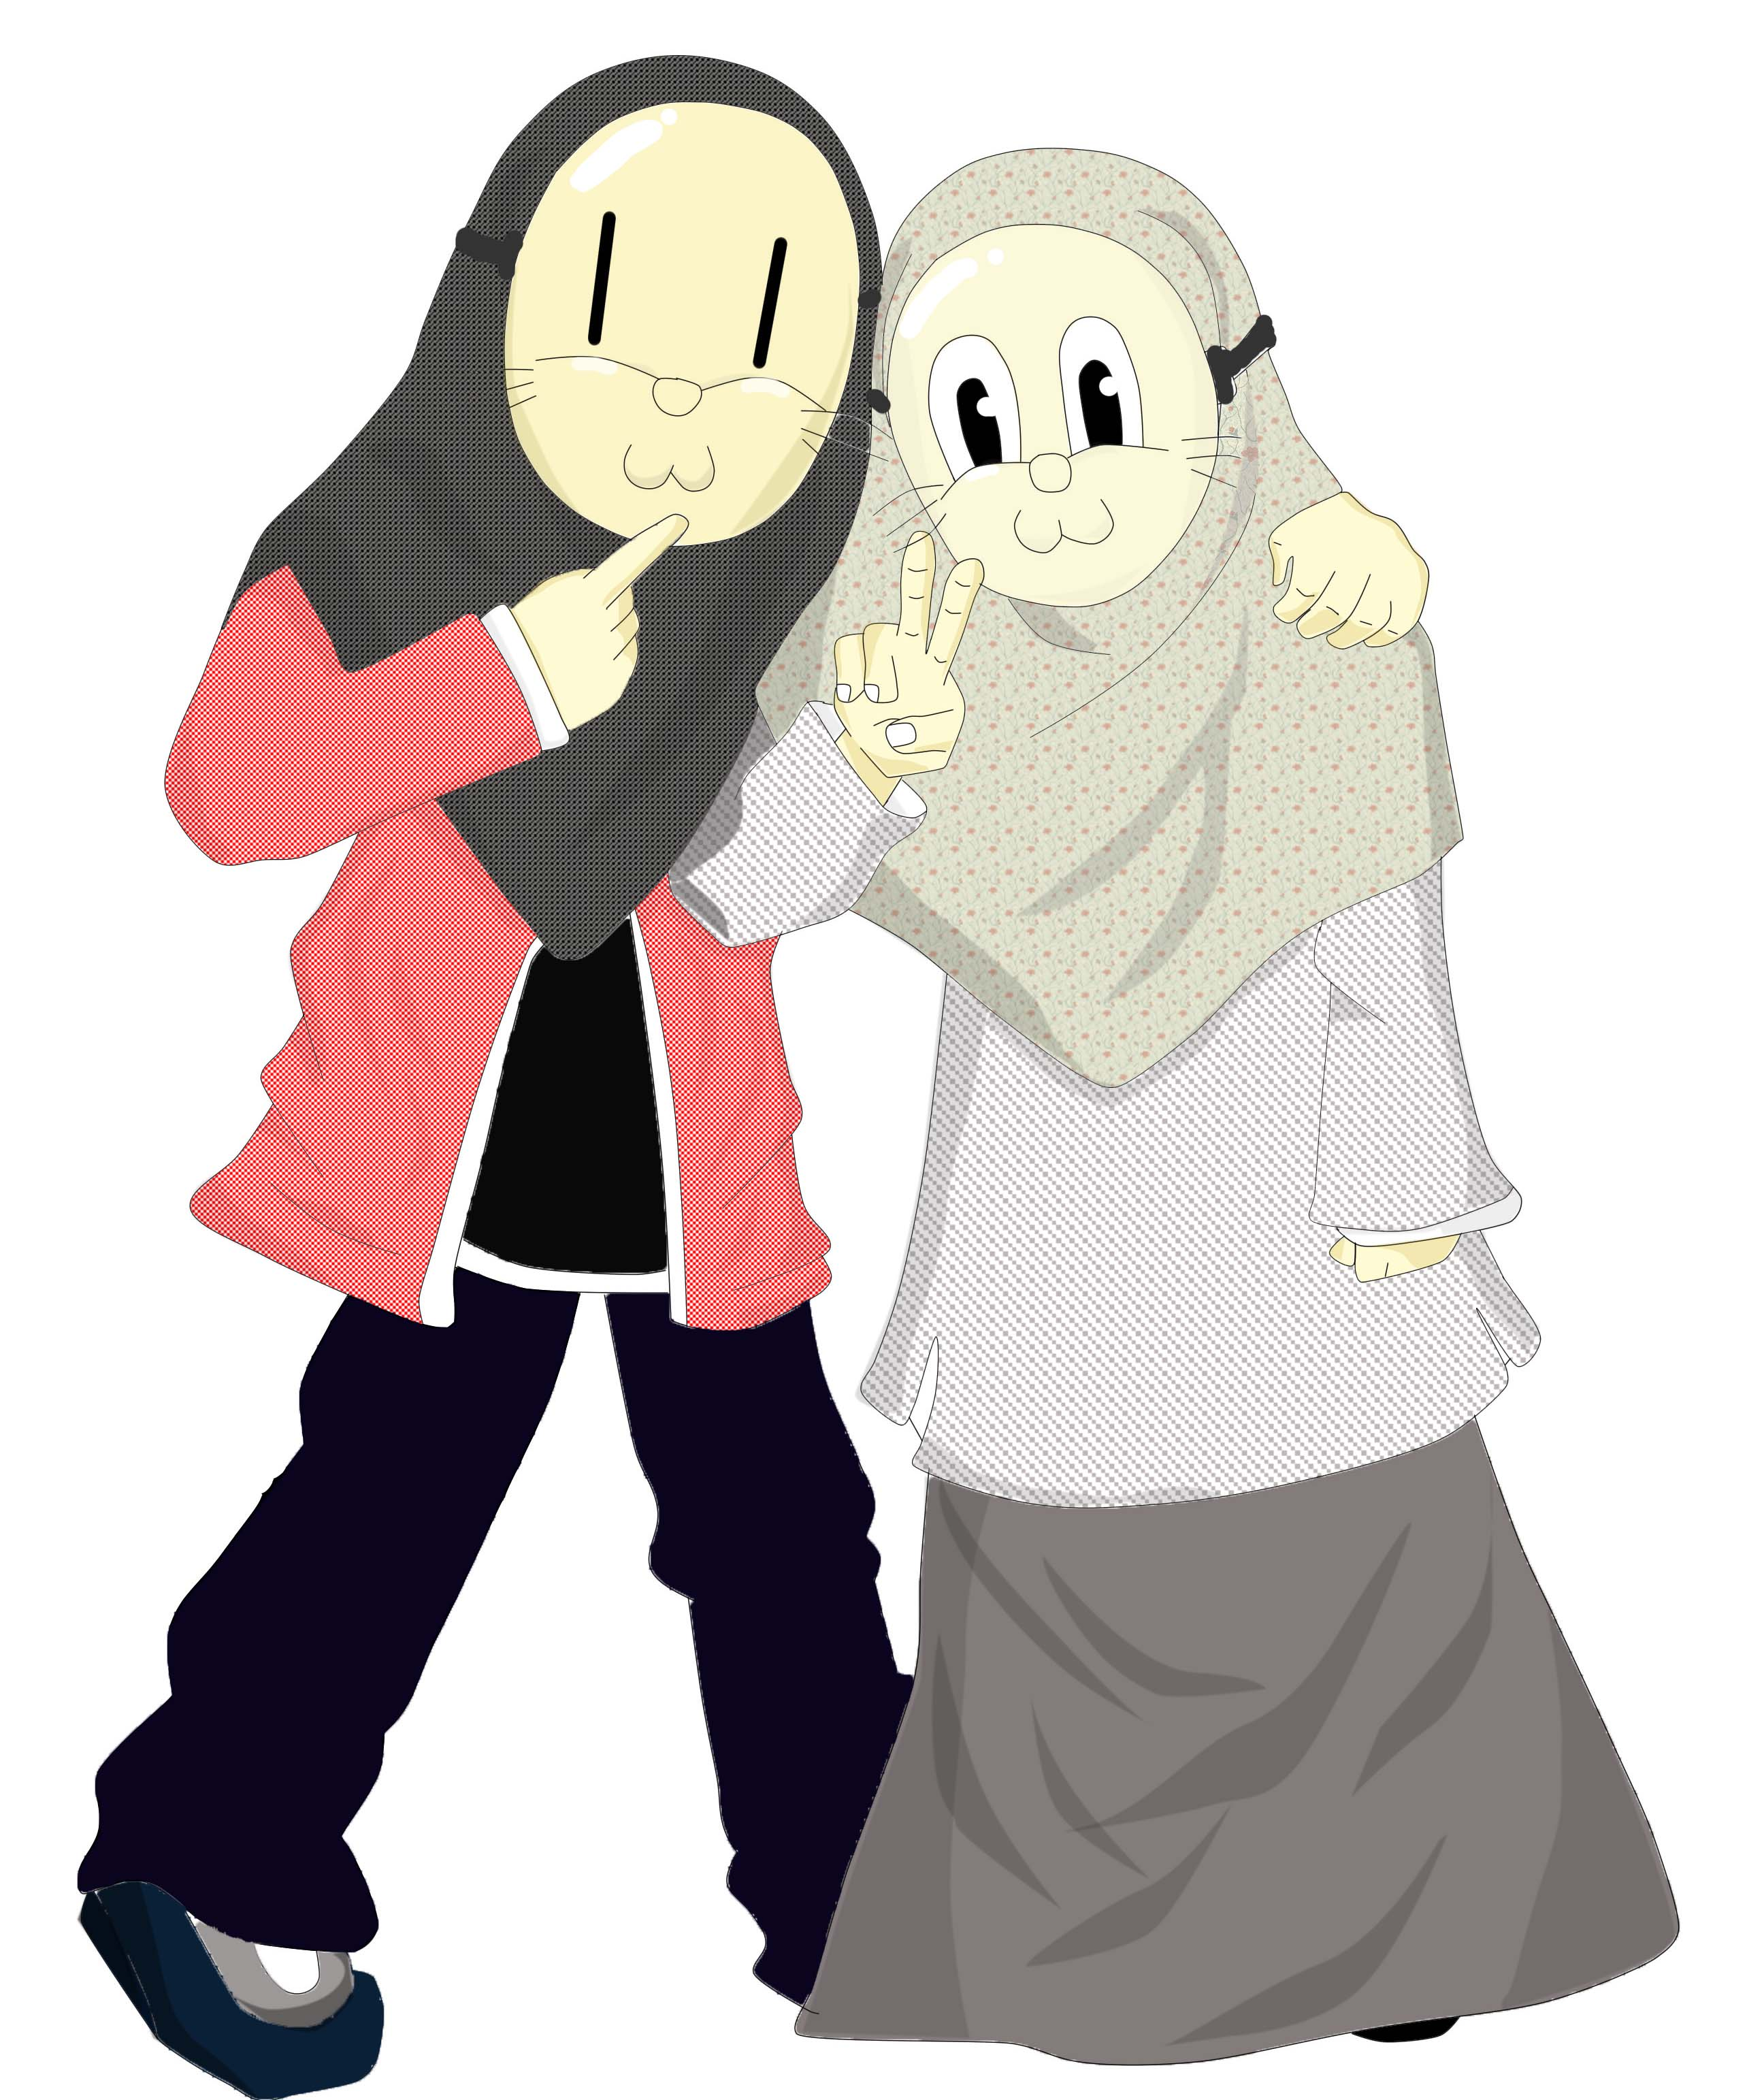 Gambar Wallpaper Kartun Hijab  Gudang Wallpaper